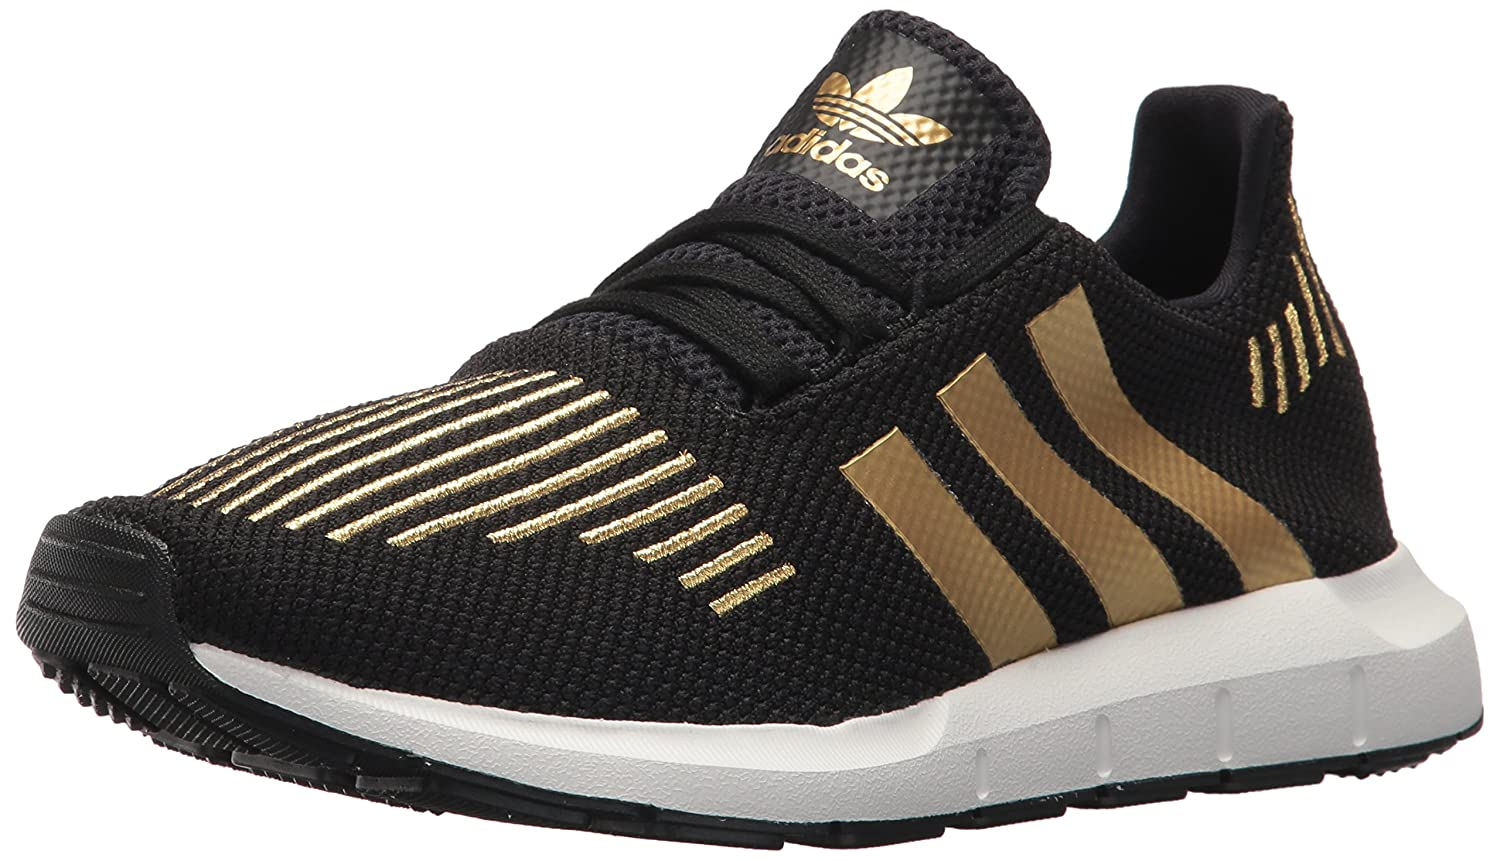 adidas Originals Women's Swift Run W B06XPG9BQS 10.5 B(M) US|Black/Gold Metallic/White